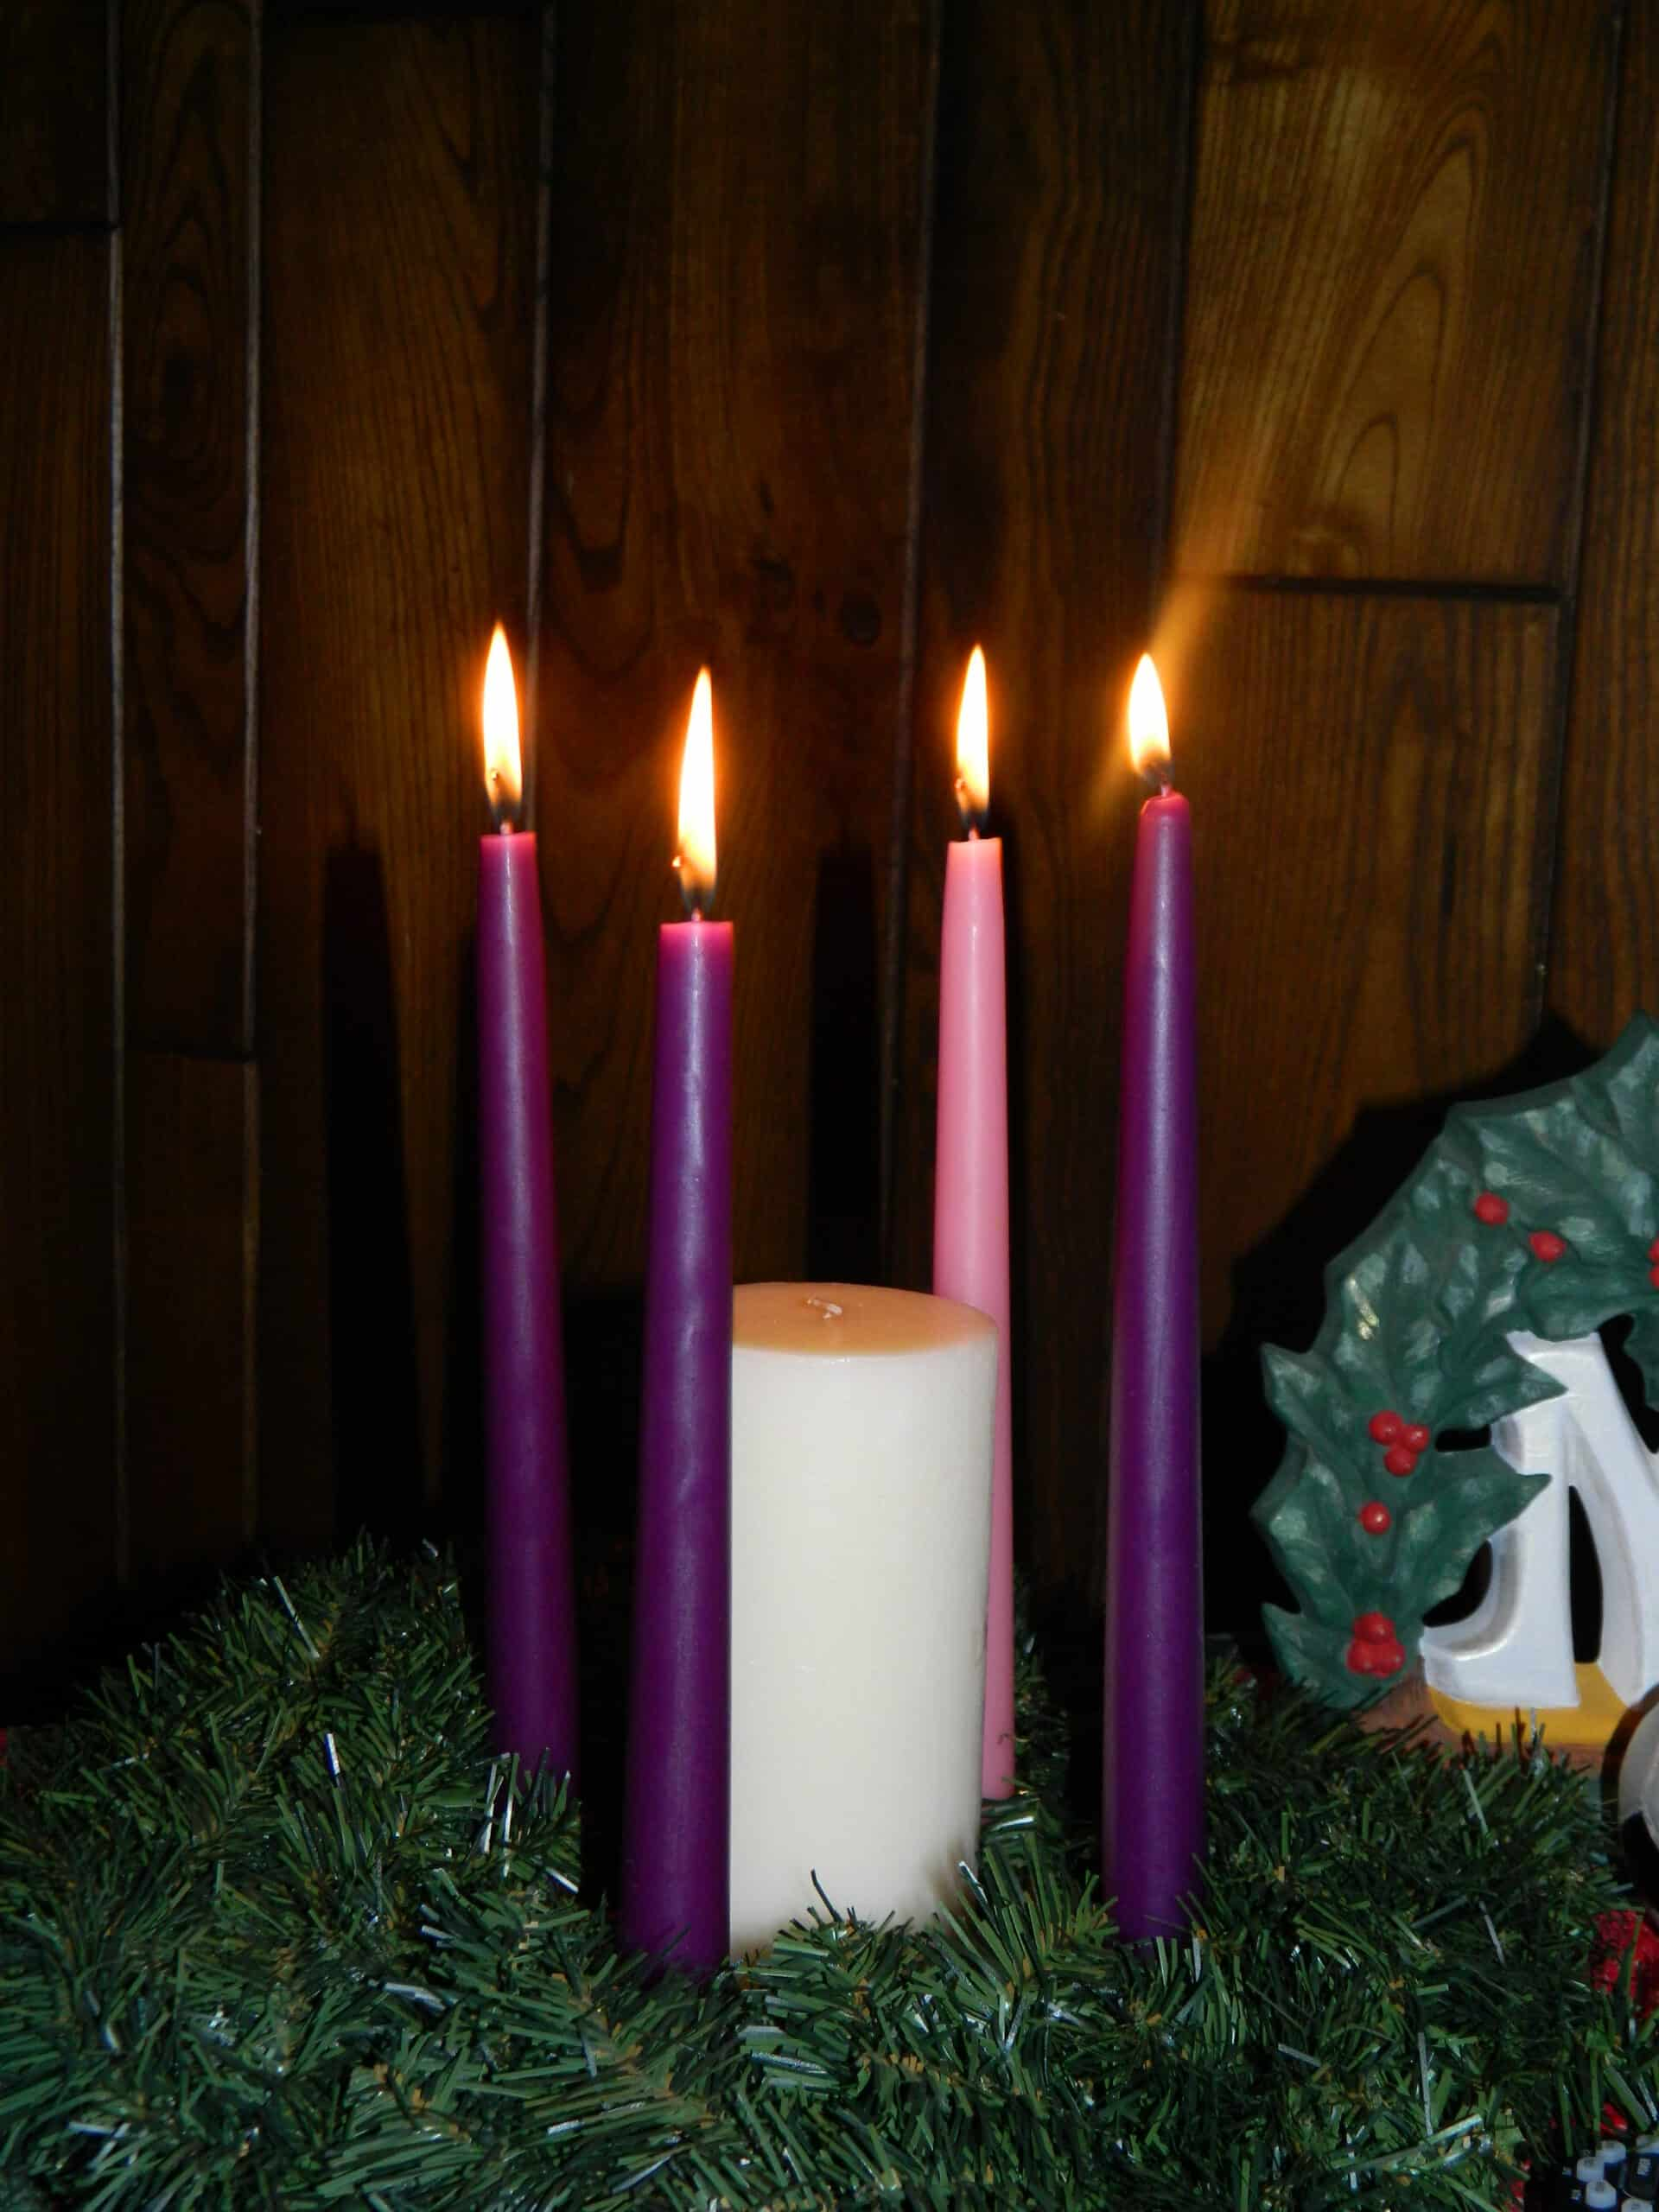 An Advent How To